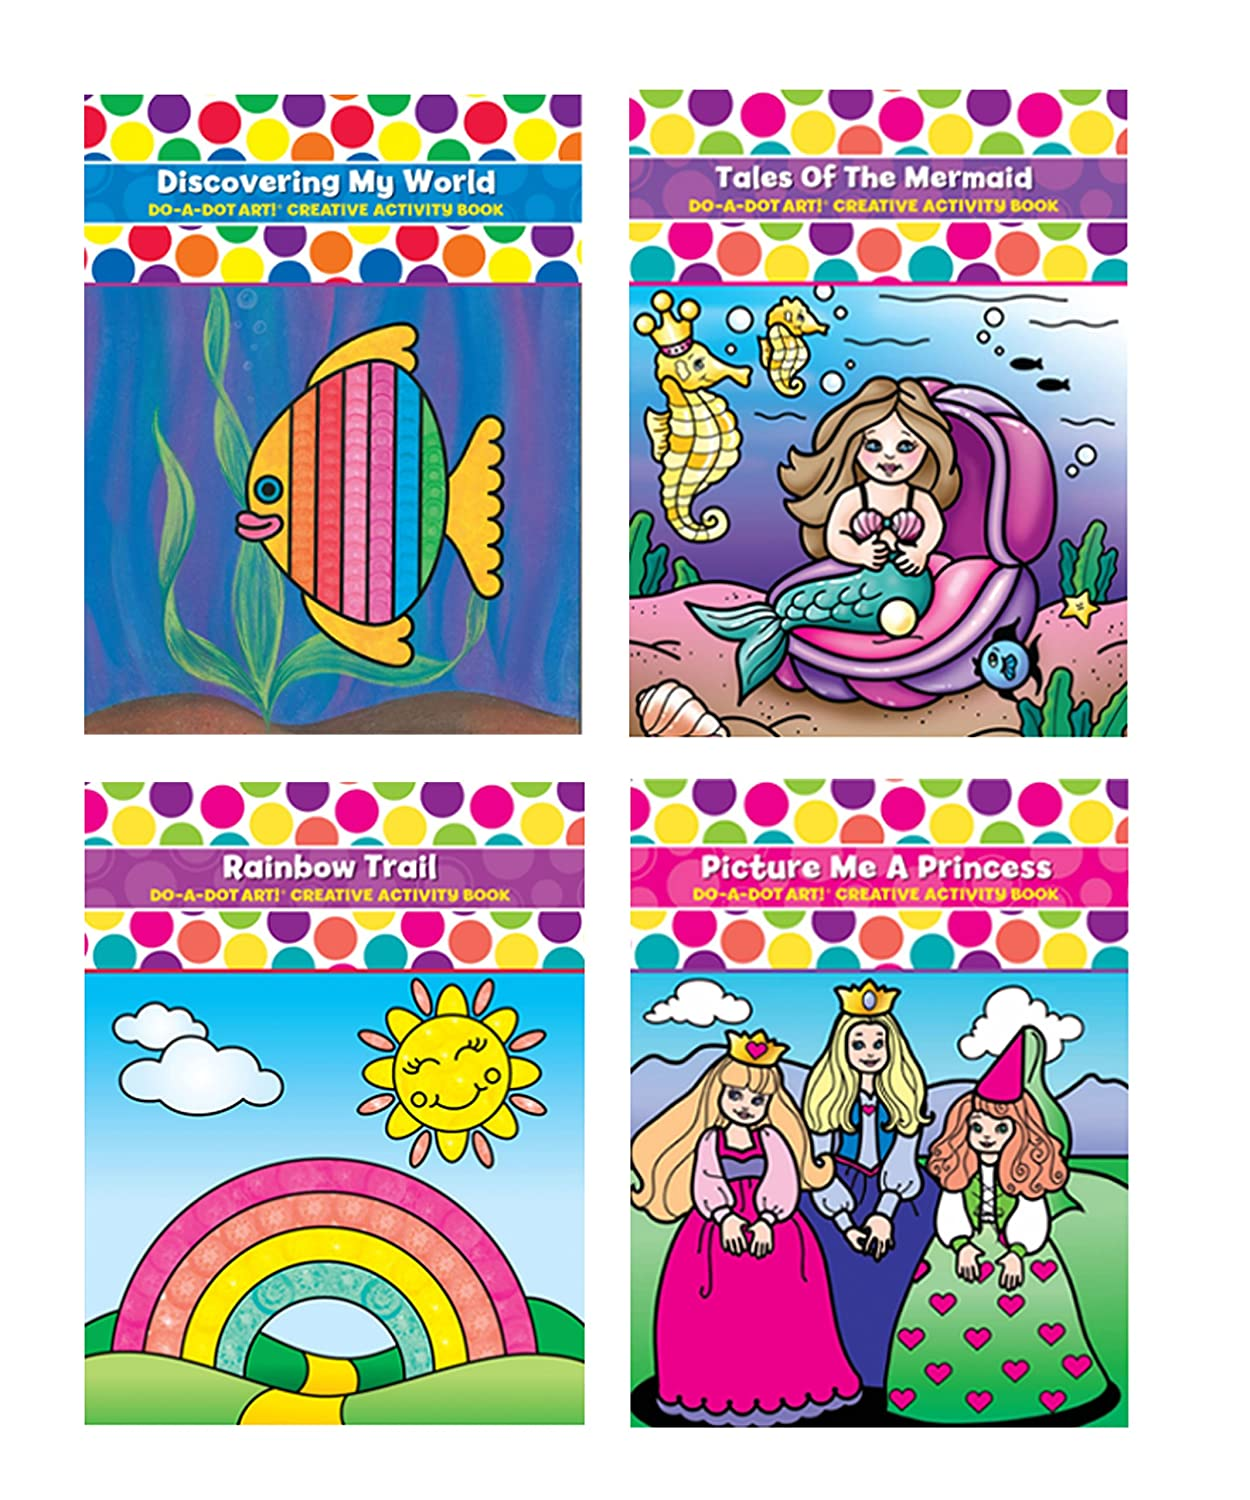 Do A Dot Art! Coloring Book Bundle- 4 Pack Coloring Books- Discovering My World, Picture Me A Princess, Rainbow Trail, Tales of the Mermaid